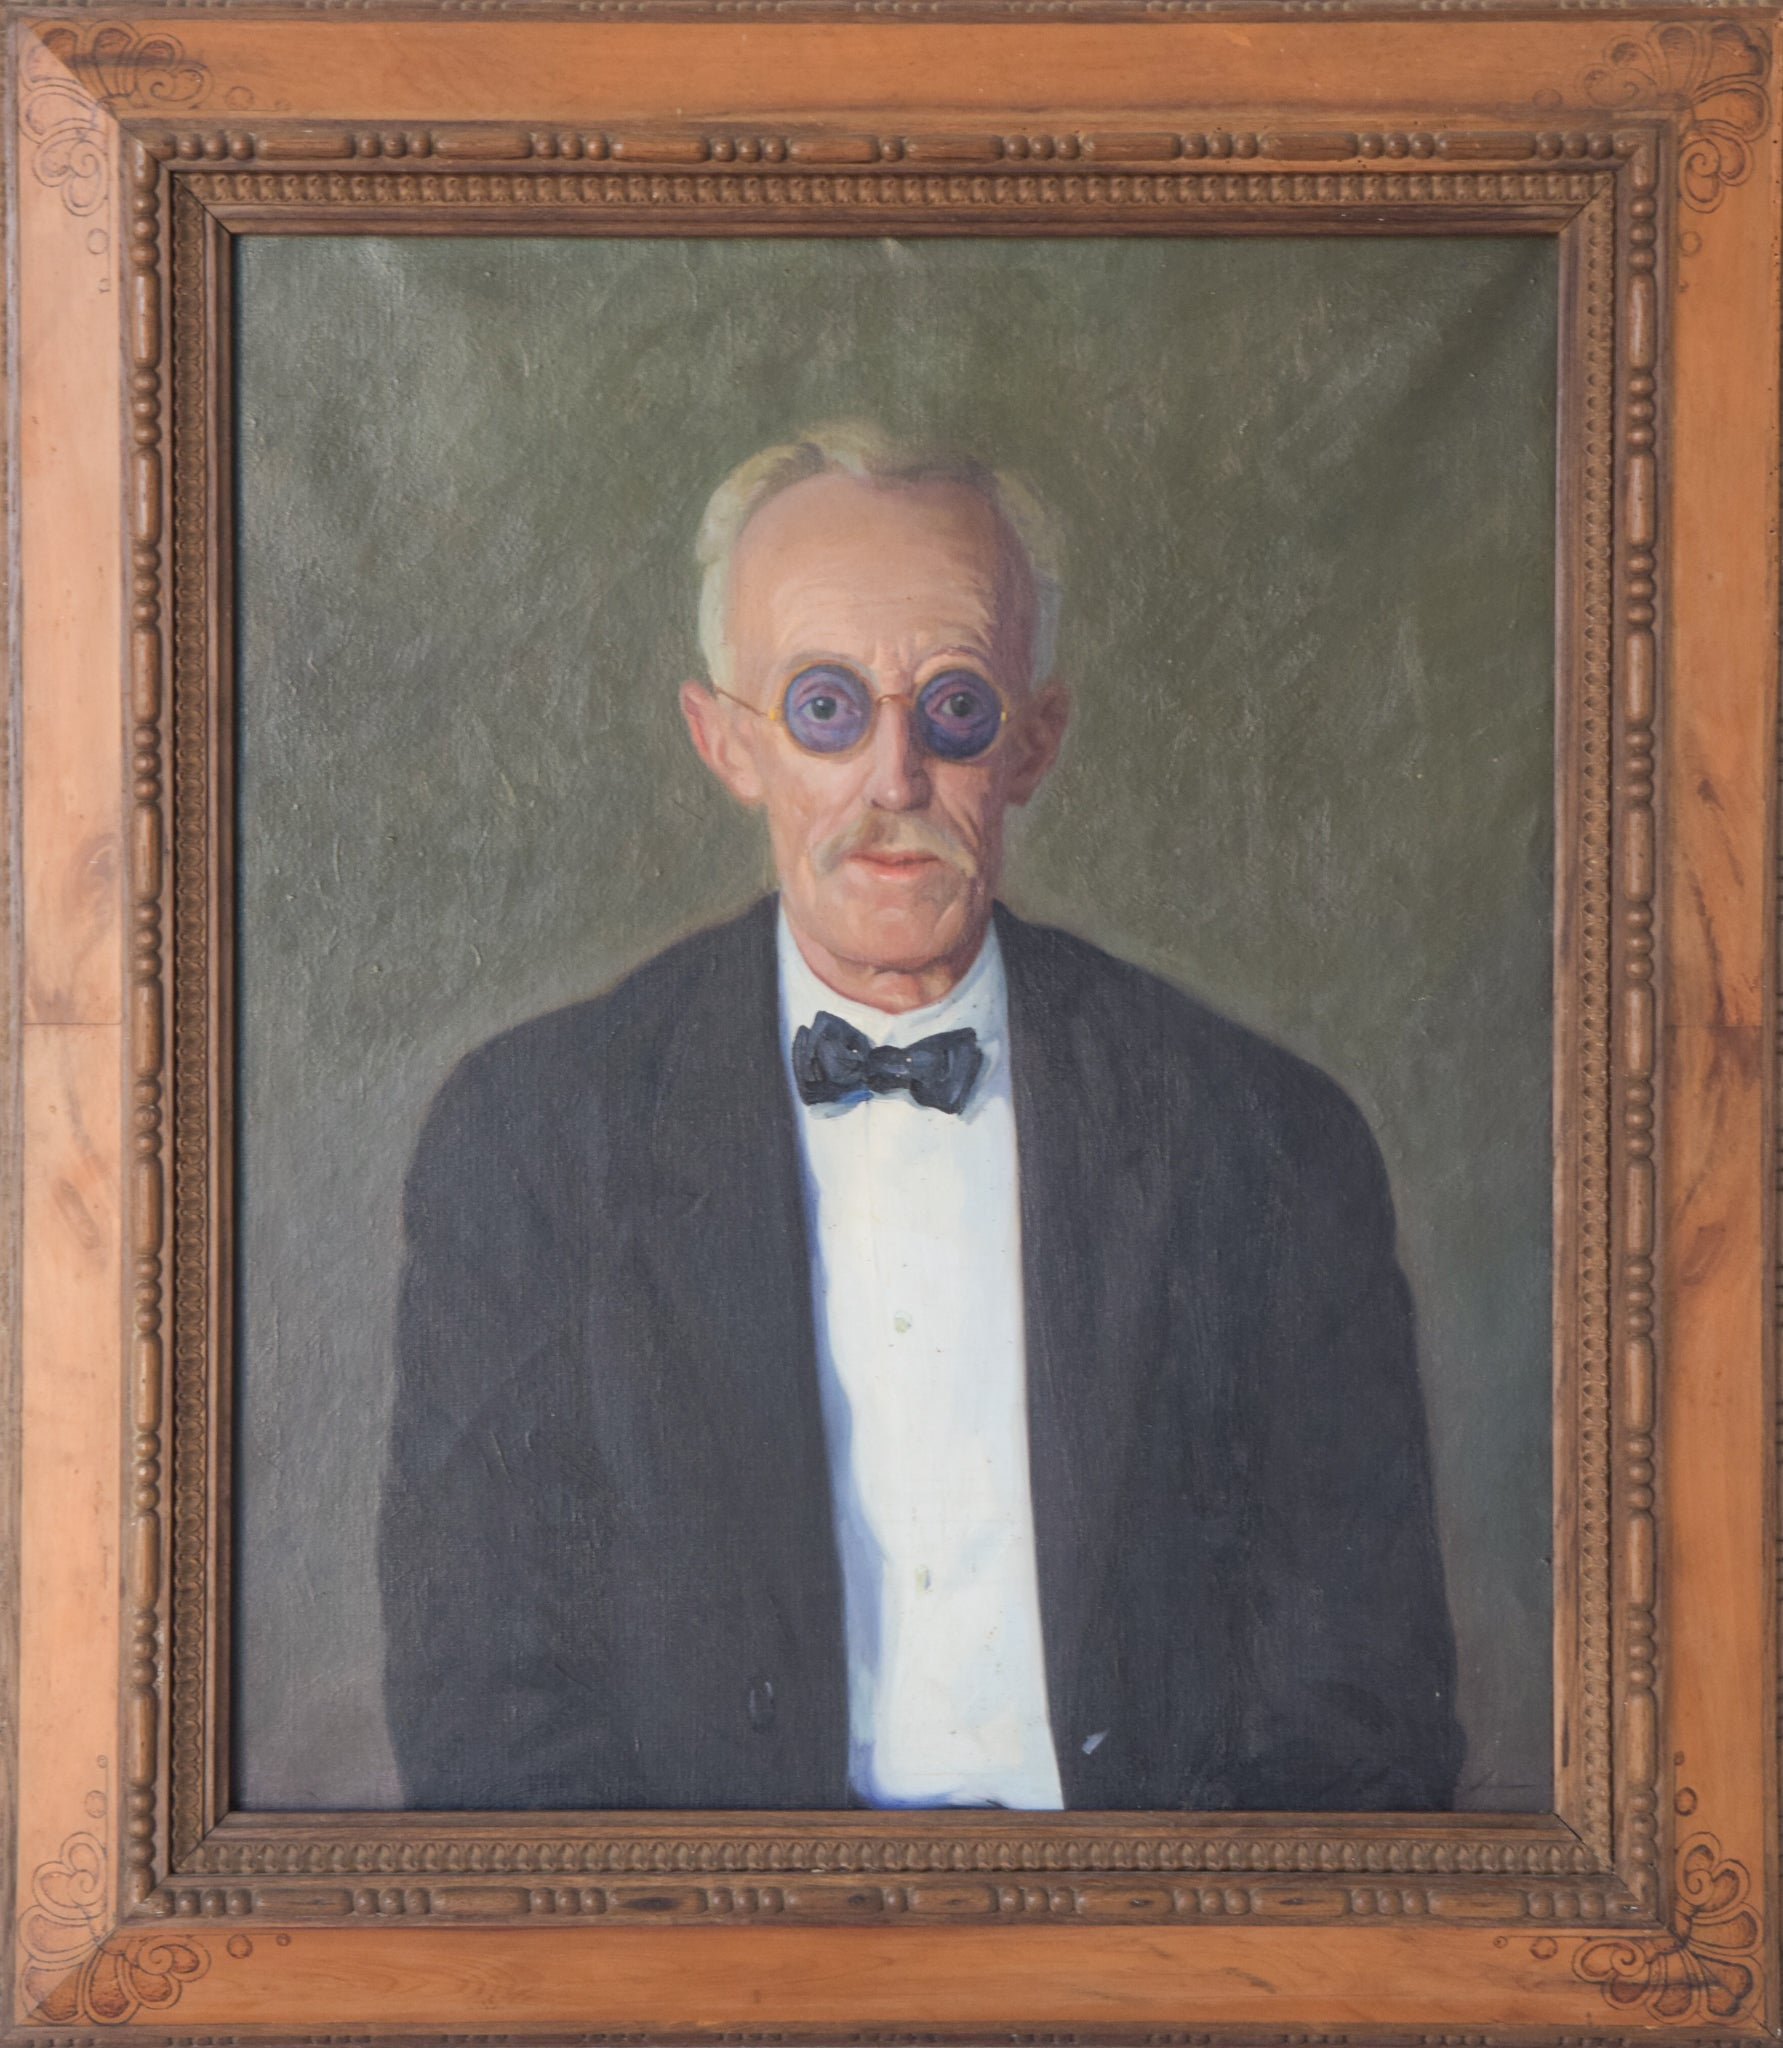 Large Portrait in Oil of an Old Man with Glasses_Framed